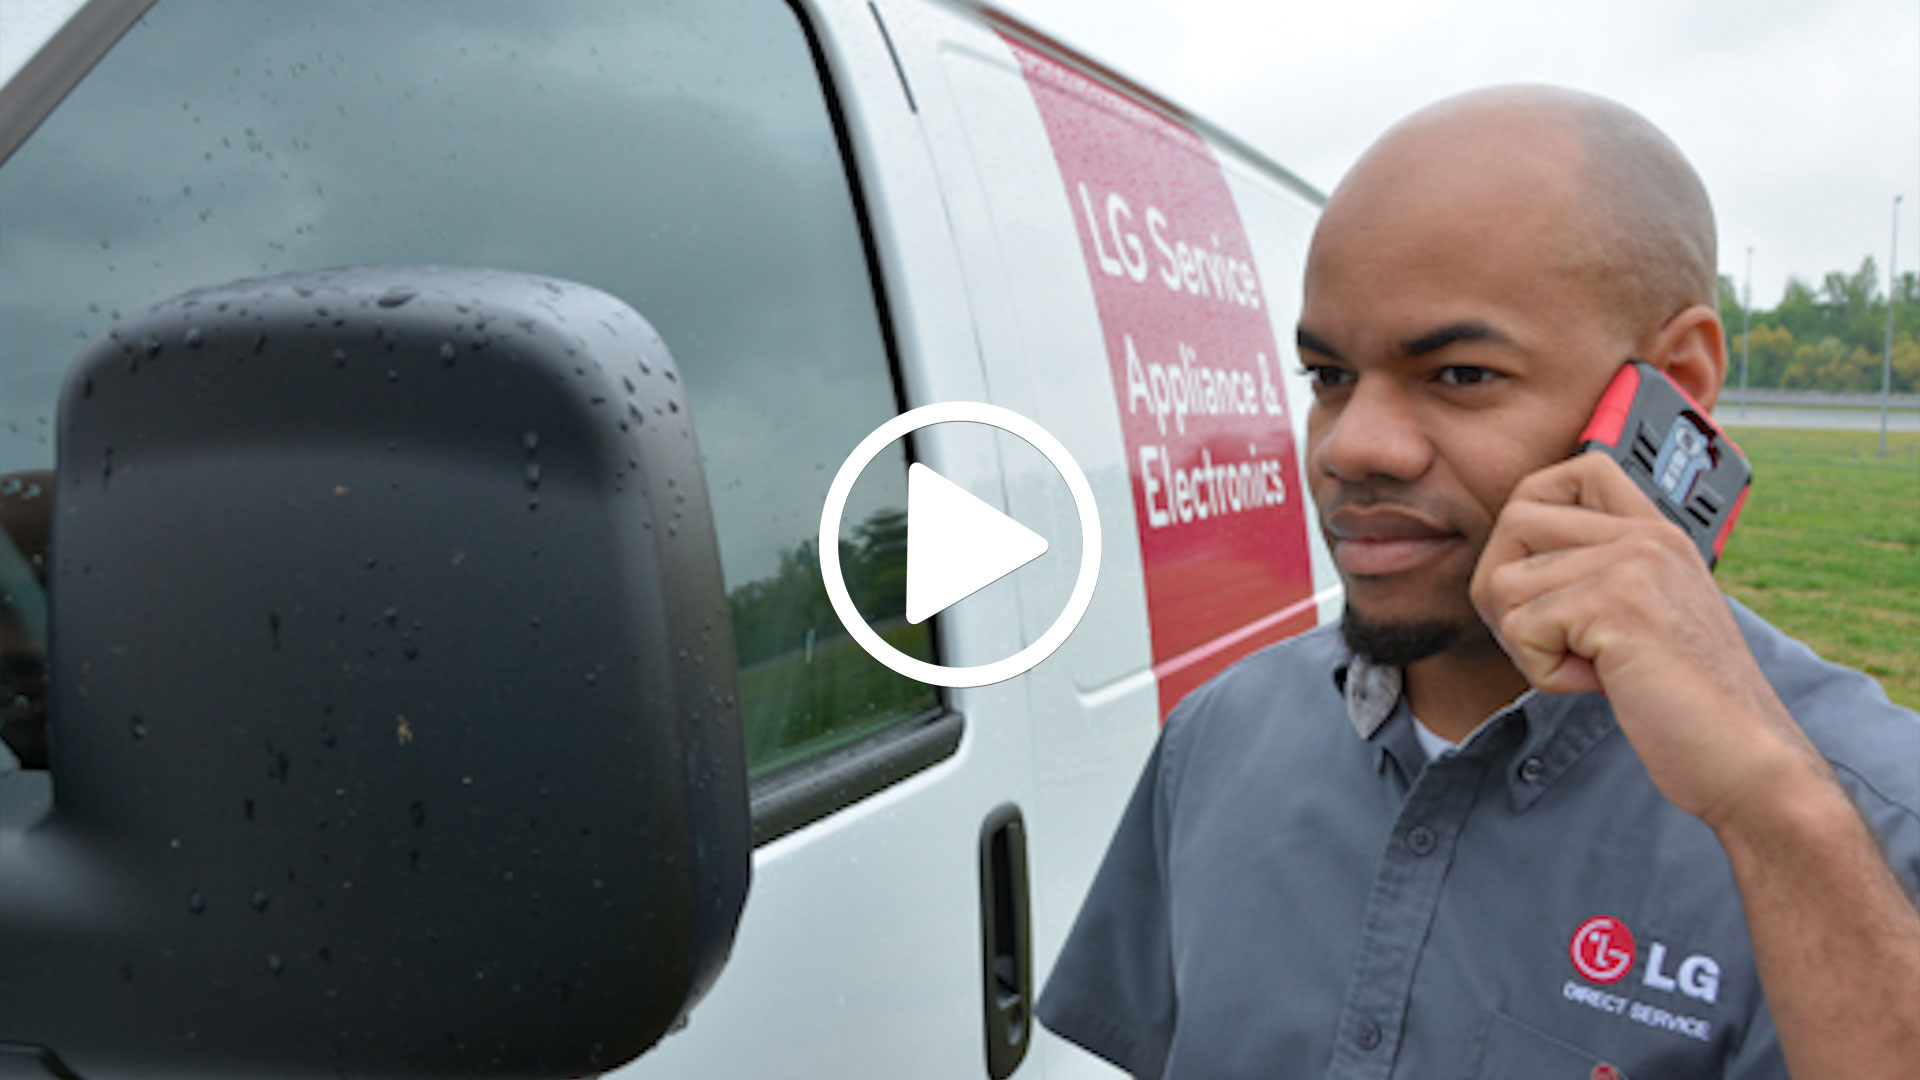 Watch our careers video for available job opening Field Service Technician in Vacaville, CA